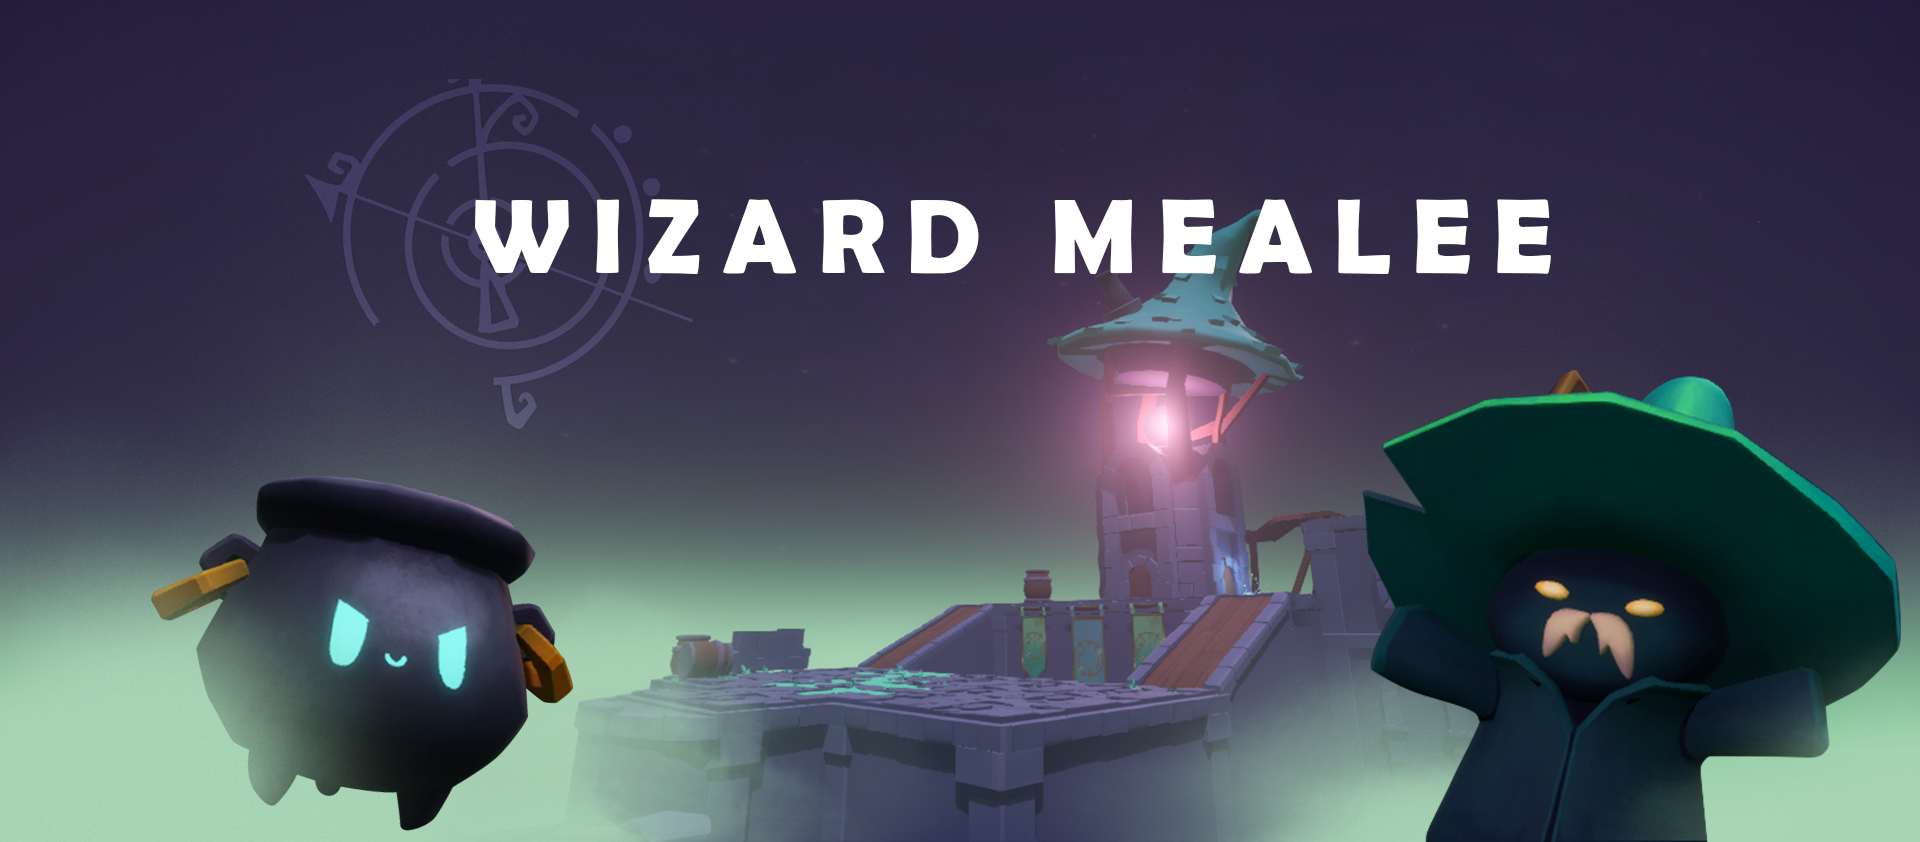 WIZARD MEALEE